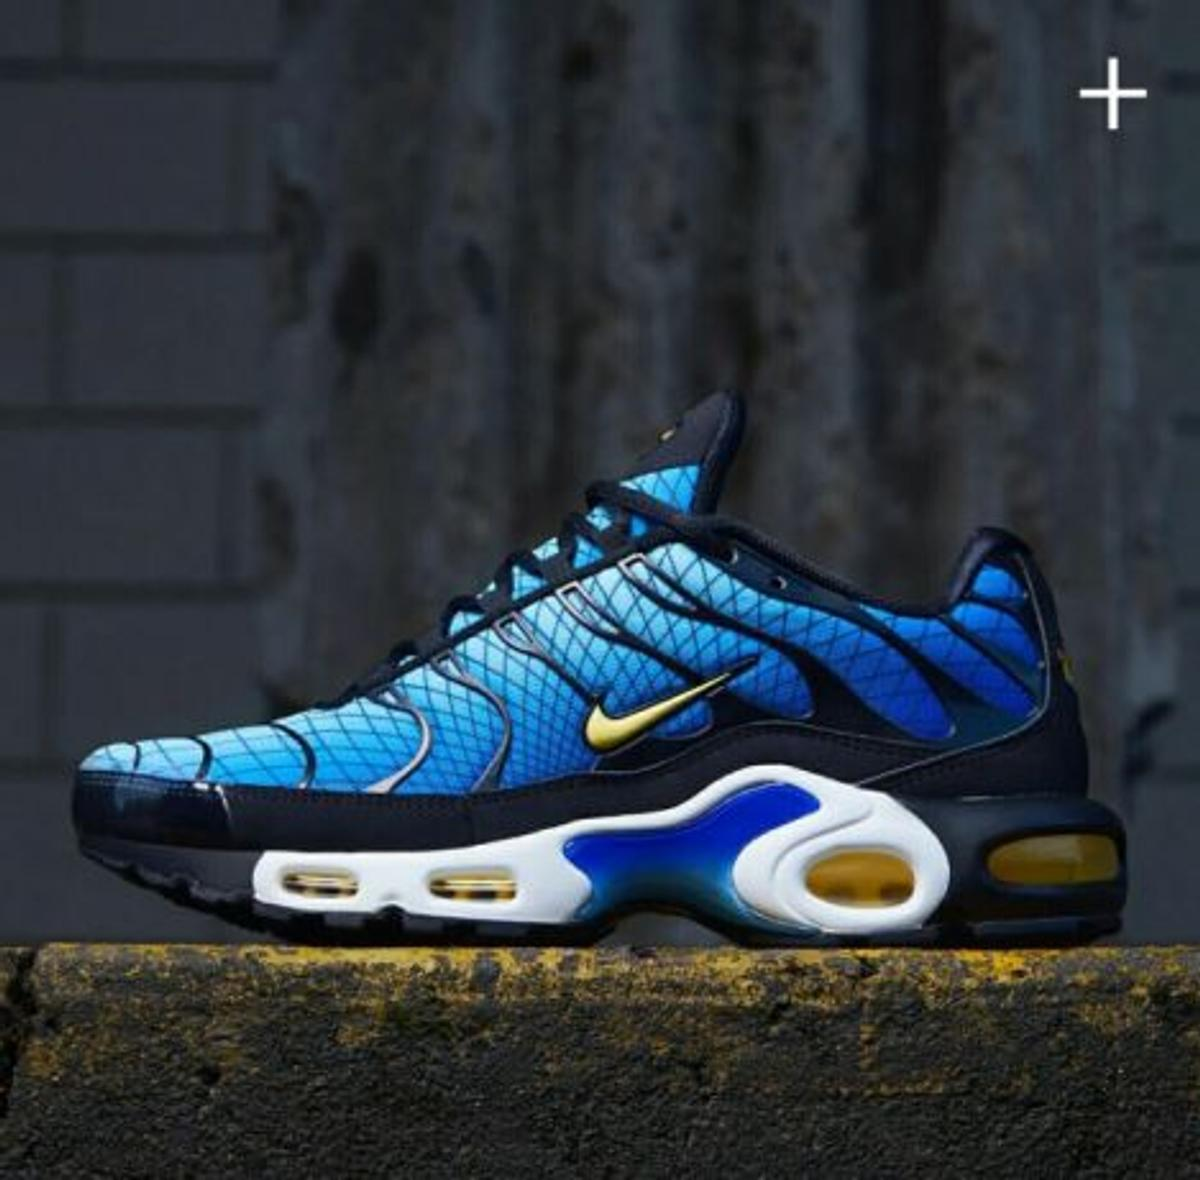 Nike Air Max TN SE Neu in 81675 München for ?329.00 for sale